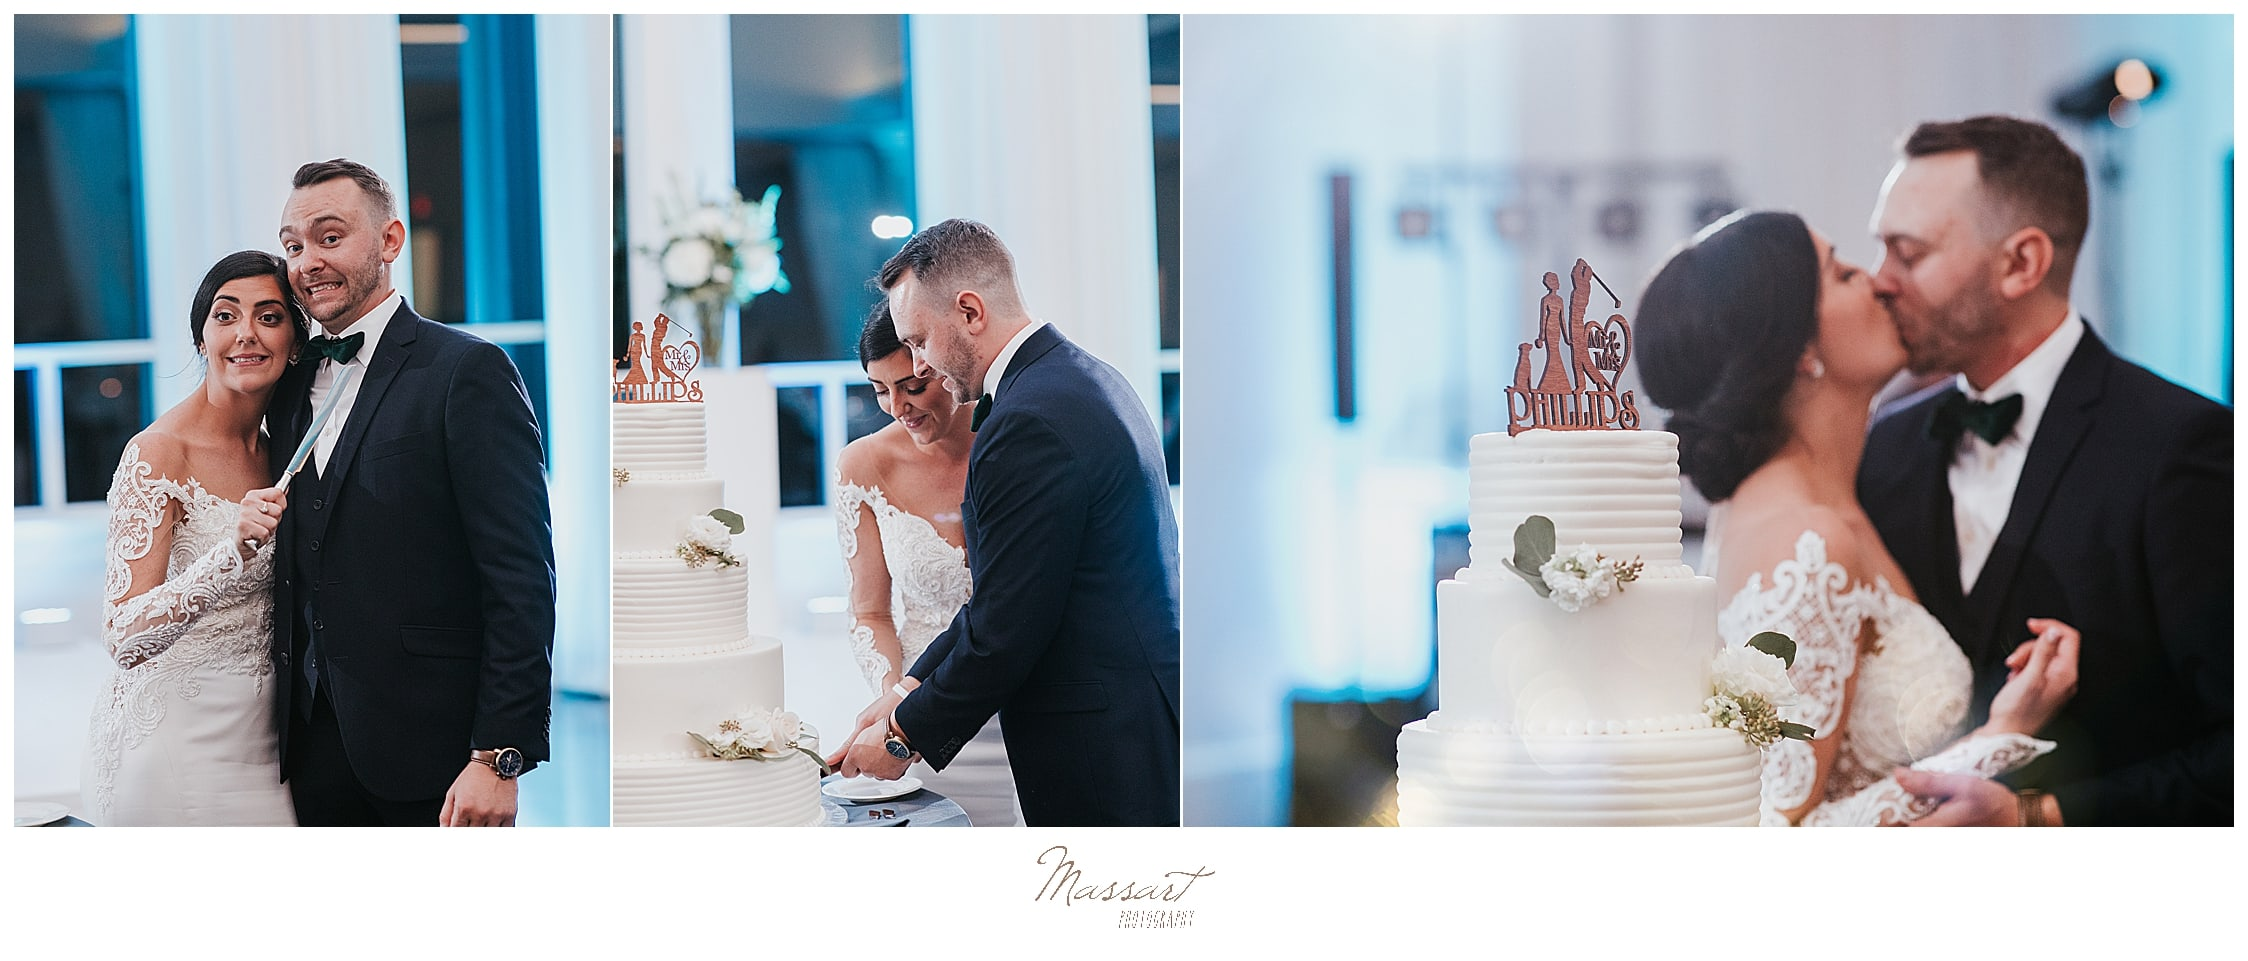 bride and groom cut the cake photographed by Massart Photography